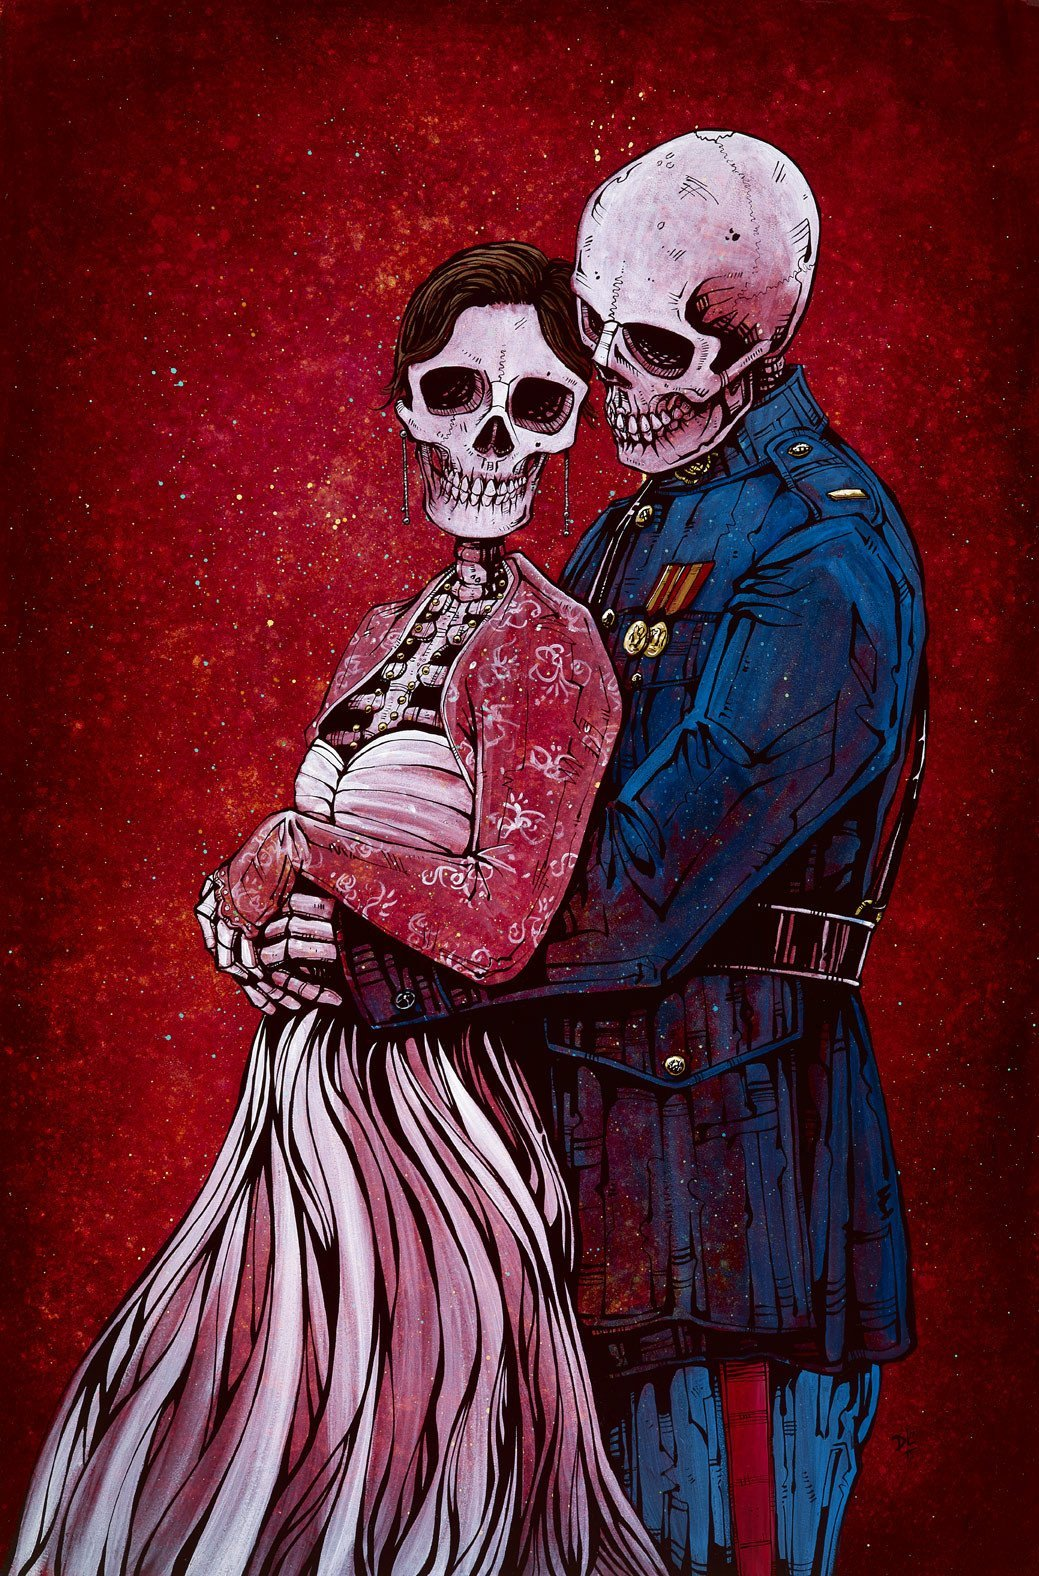 For Love and Country by Day of the Dead Artist David Lozeau, Day of the Dead Art, Dia de los Muertos Art, Dia de los Muertos Artist